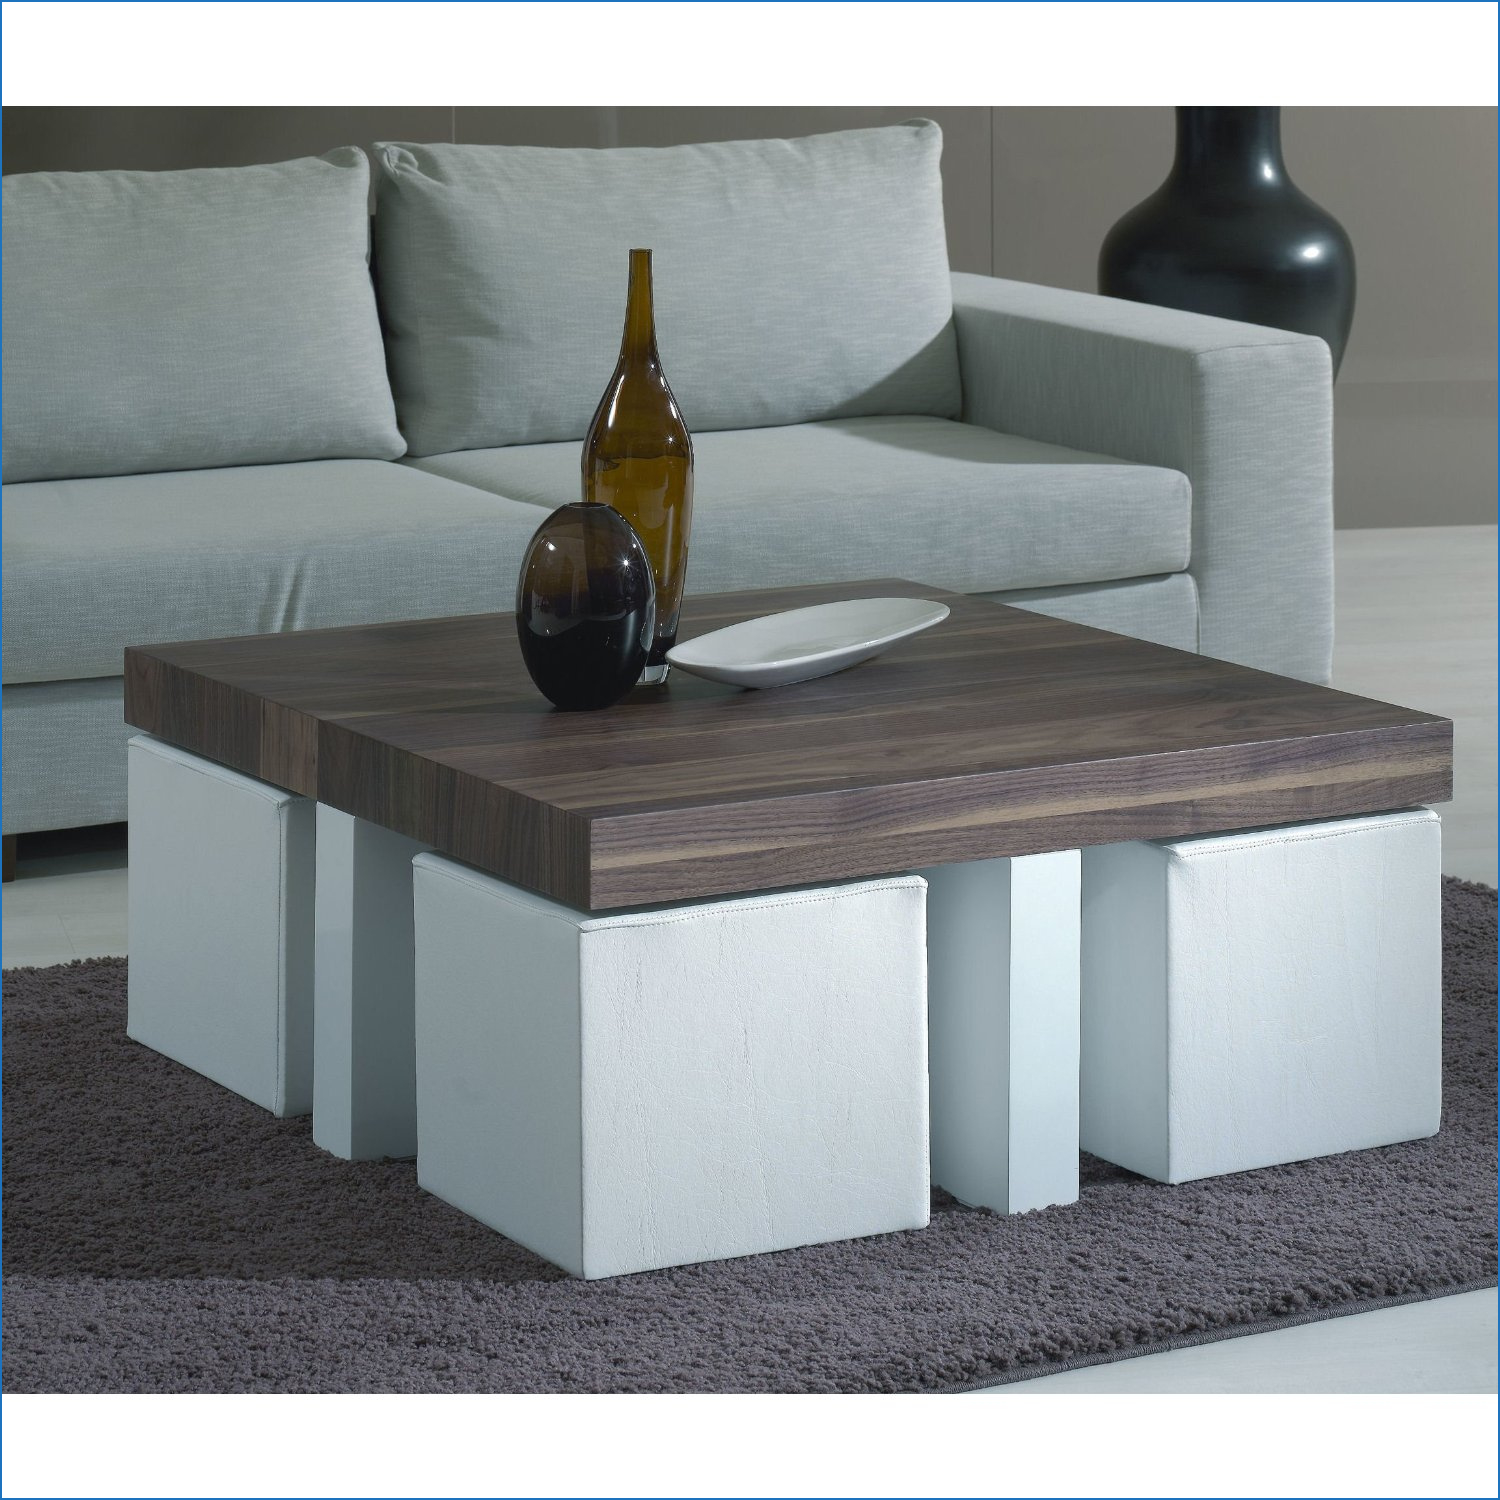 21 new images of square coffee table with stools underneath - coffee tables  ideas RPRSUZS